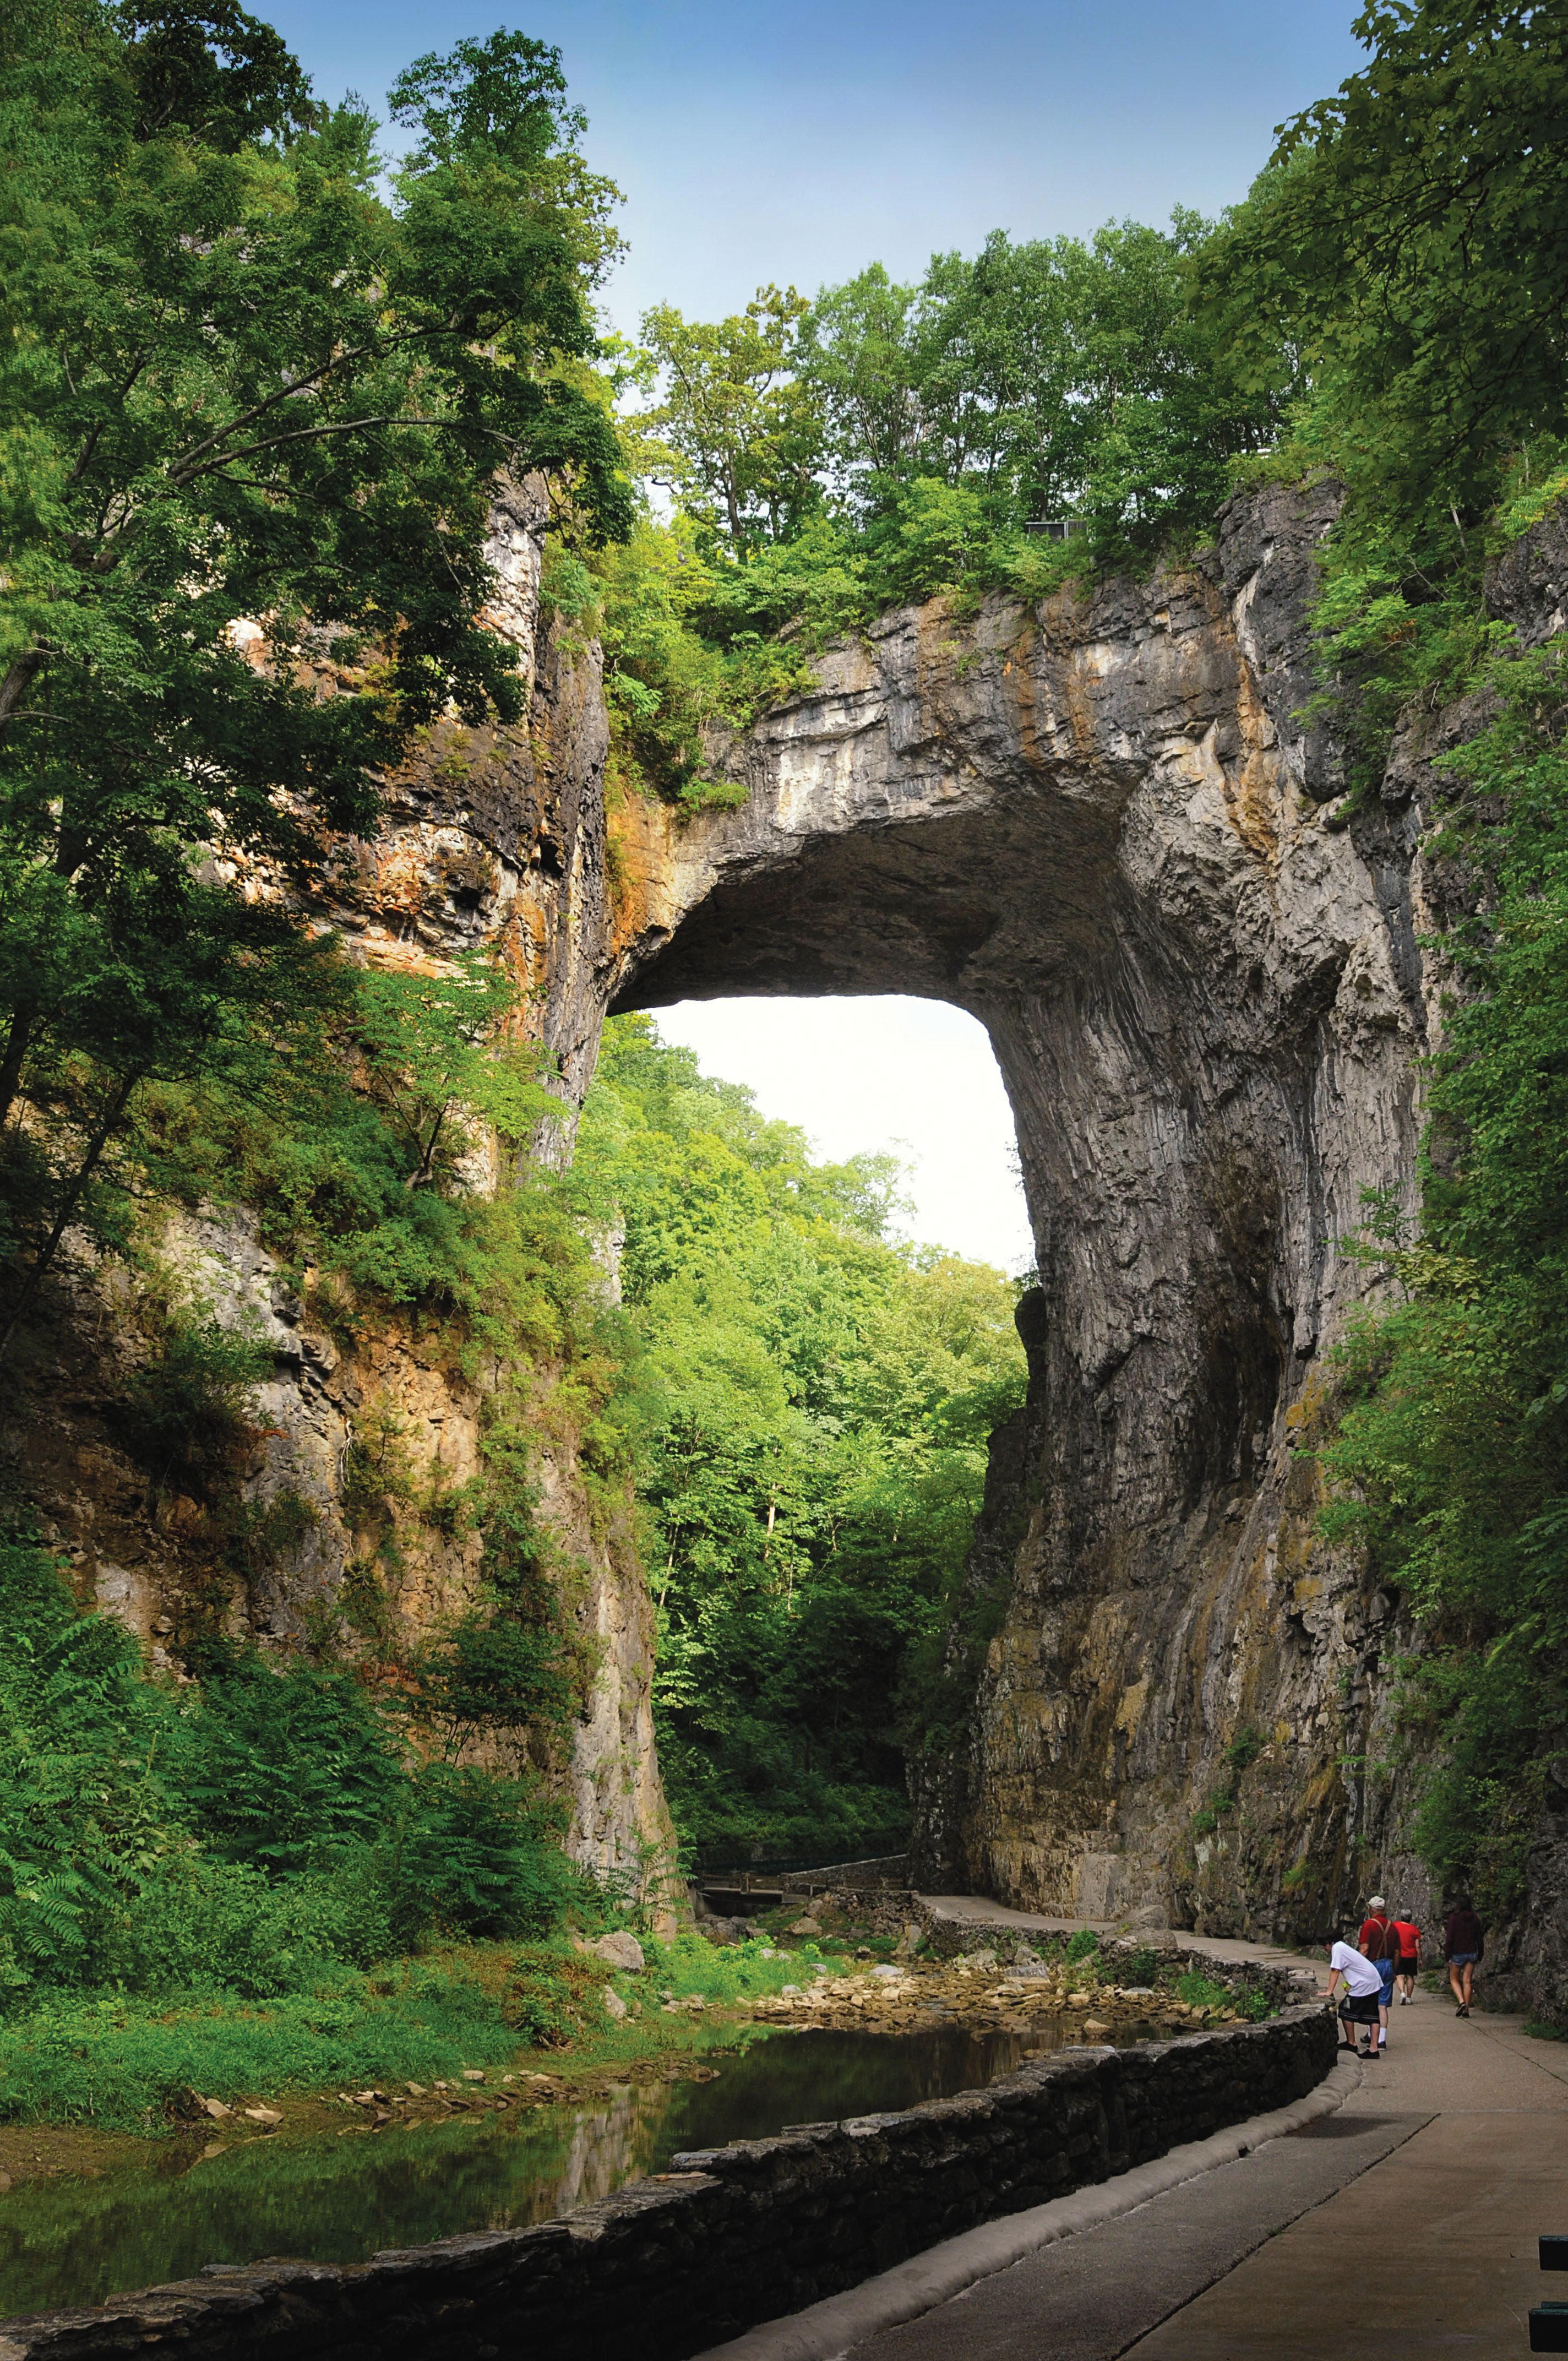 The Natural Bridge Va History Pejzazhi Puteshestviya Landshaft